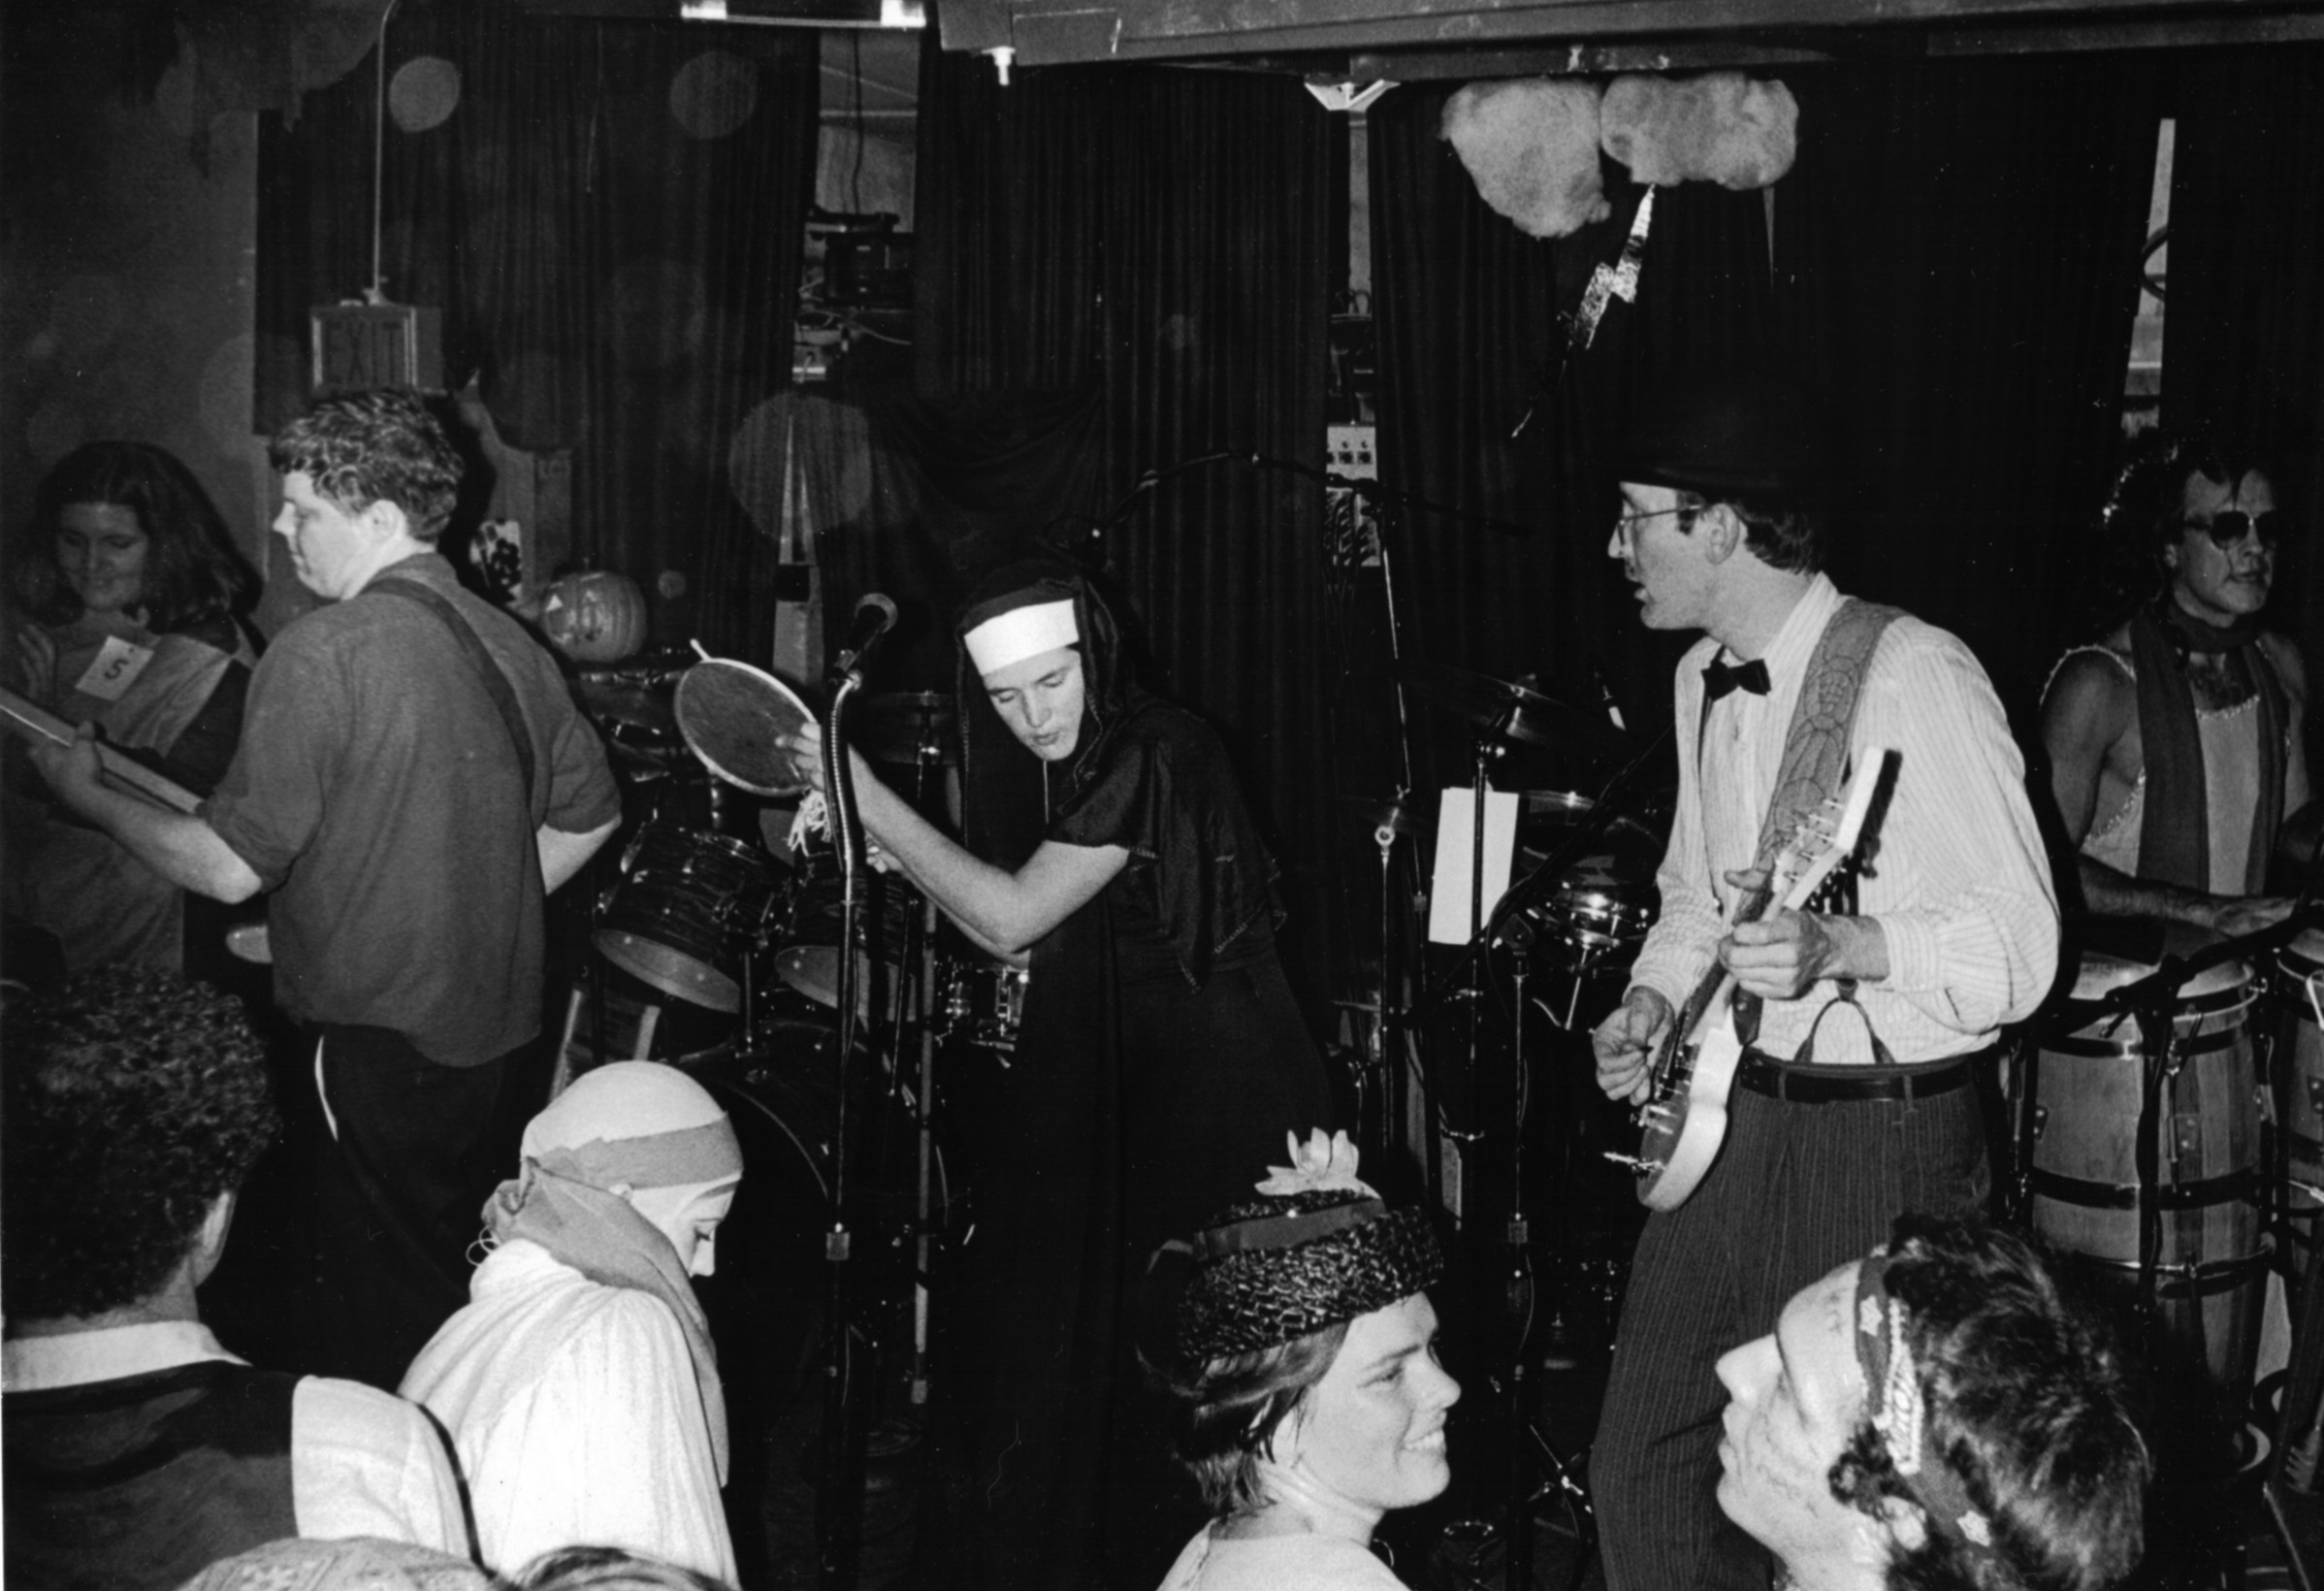 The Squalls by unknown photographer. Halloween 1982 at the 40 Watt. Left to Right Diana Torell, Alan Walsh, Mig Little, Bob Hay, Ken Starratt. Drummer not seen, but probably Mark Cooper Smith. Photo courtesy of Bob Hay.